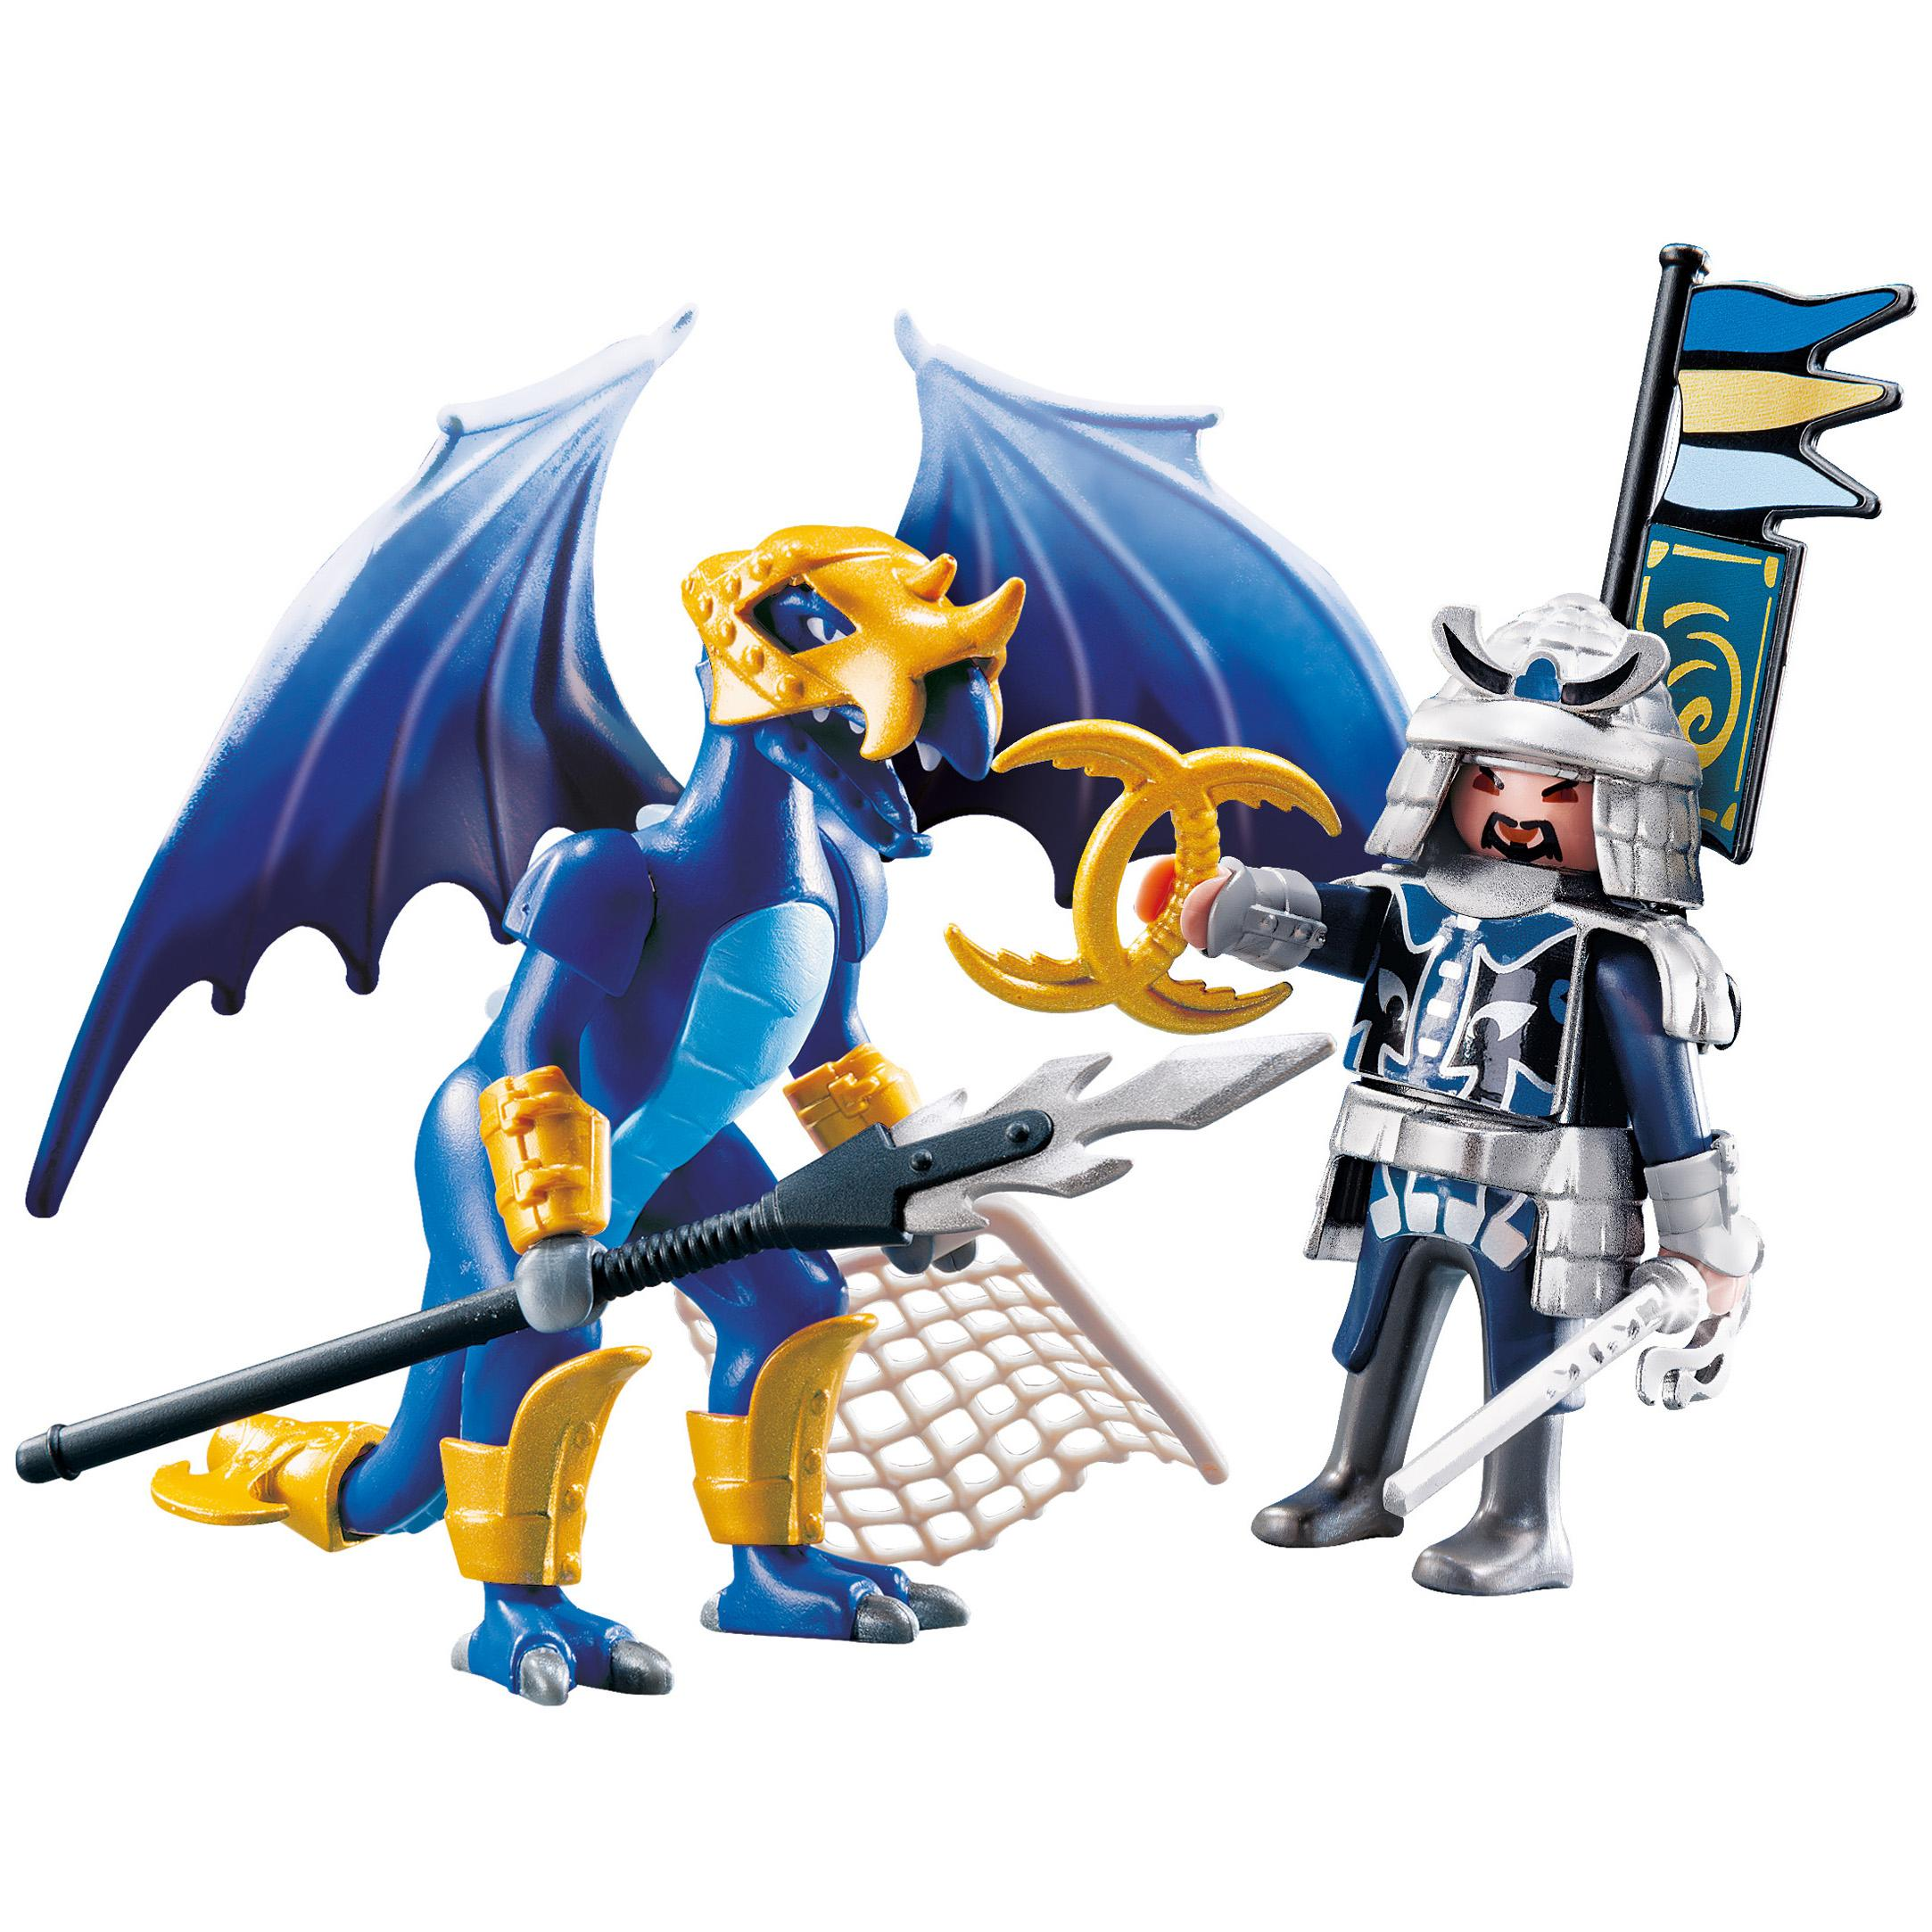 Warriors Fire And Ice Episode 3: Amazon.com: PLAYMOBIL Ice Dragon With Warrior: Toys & Games